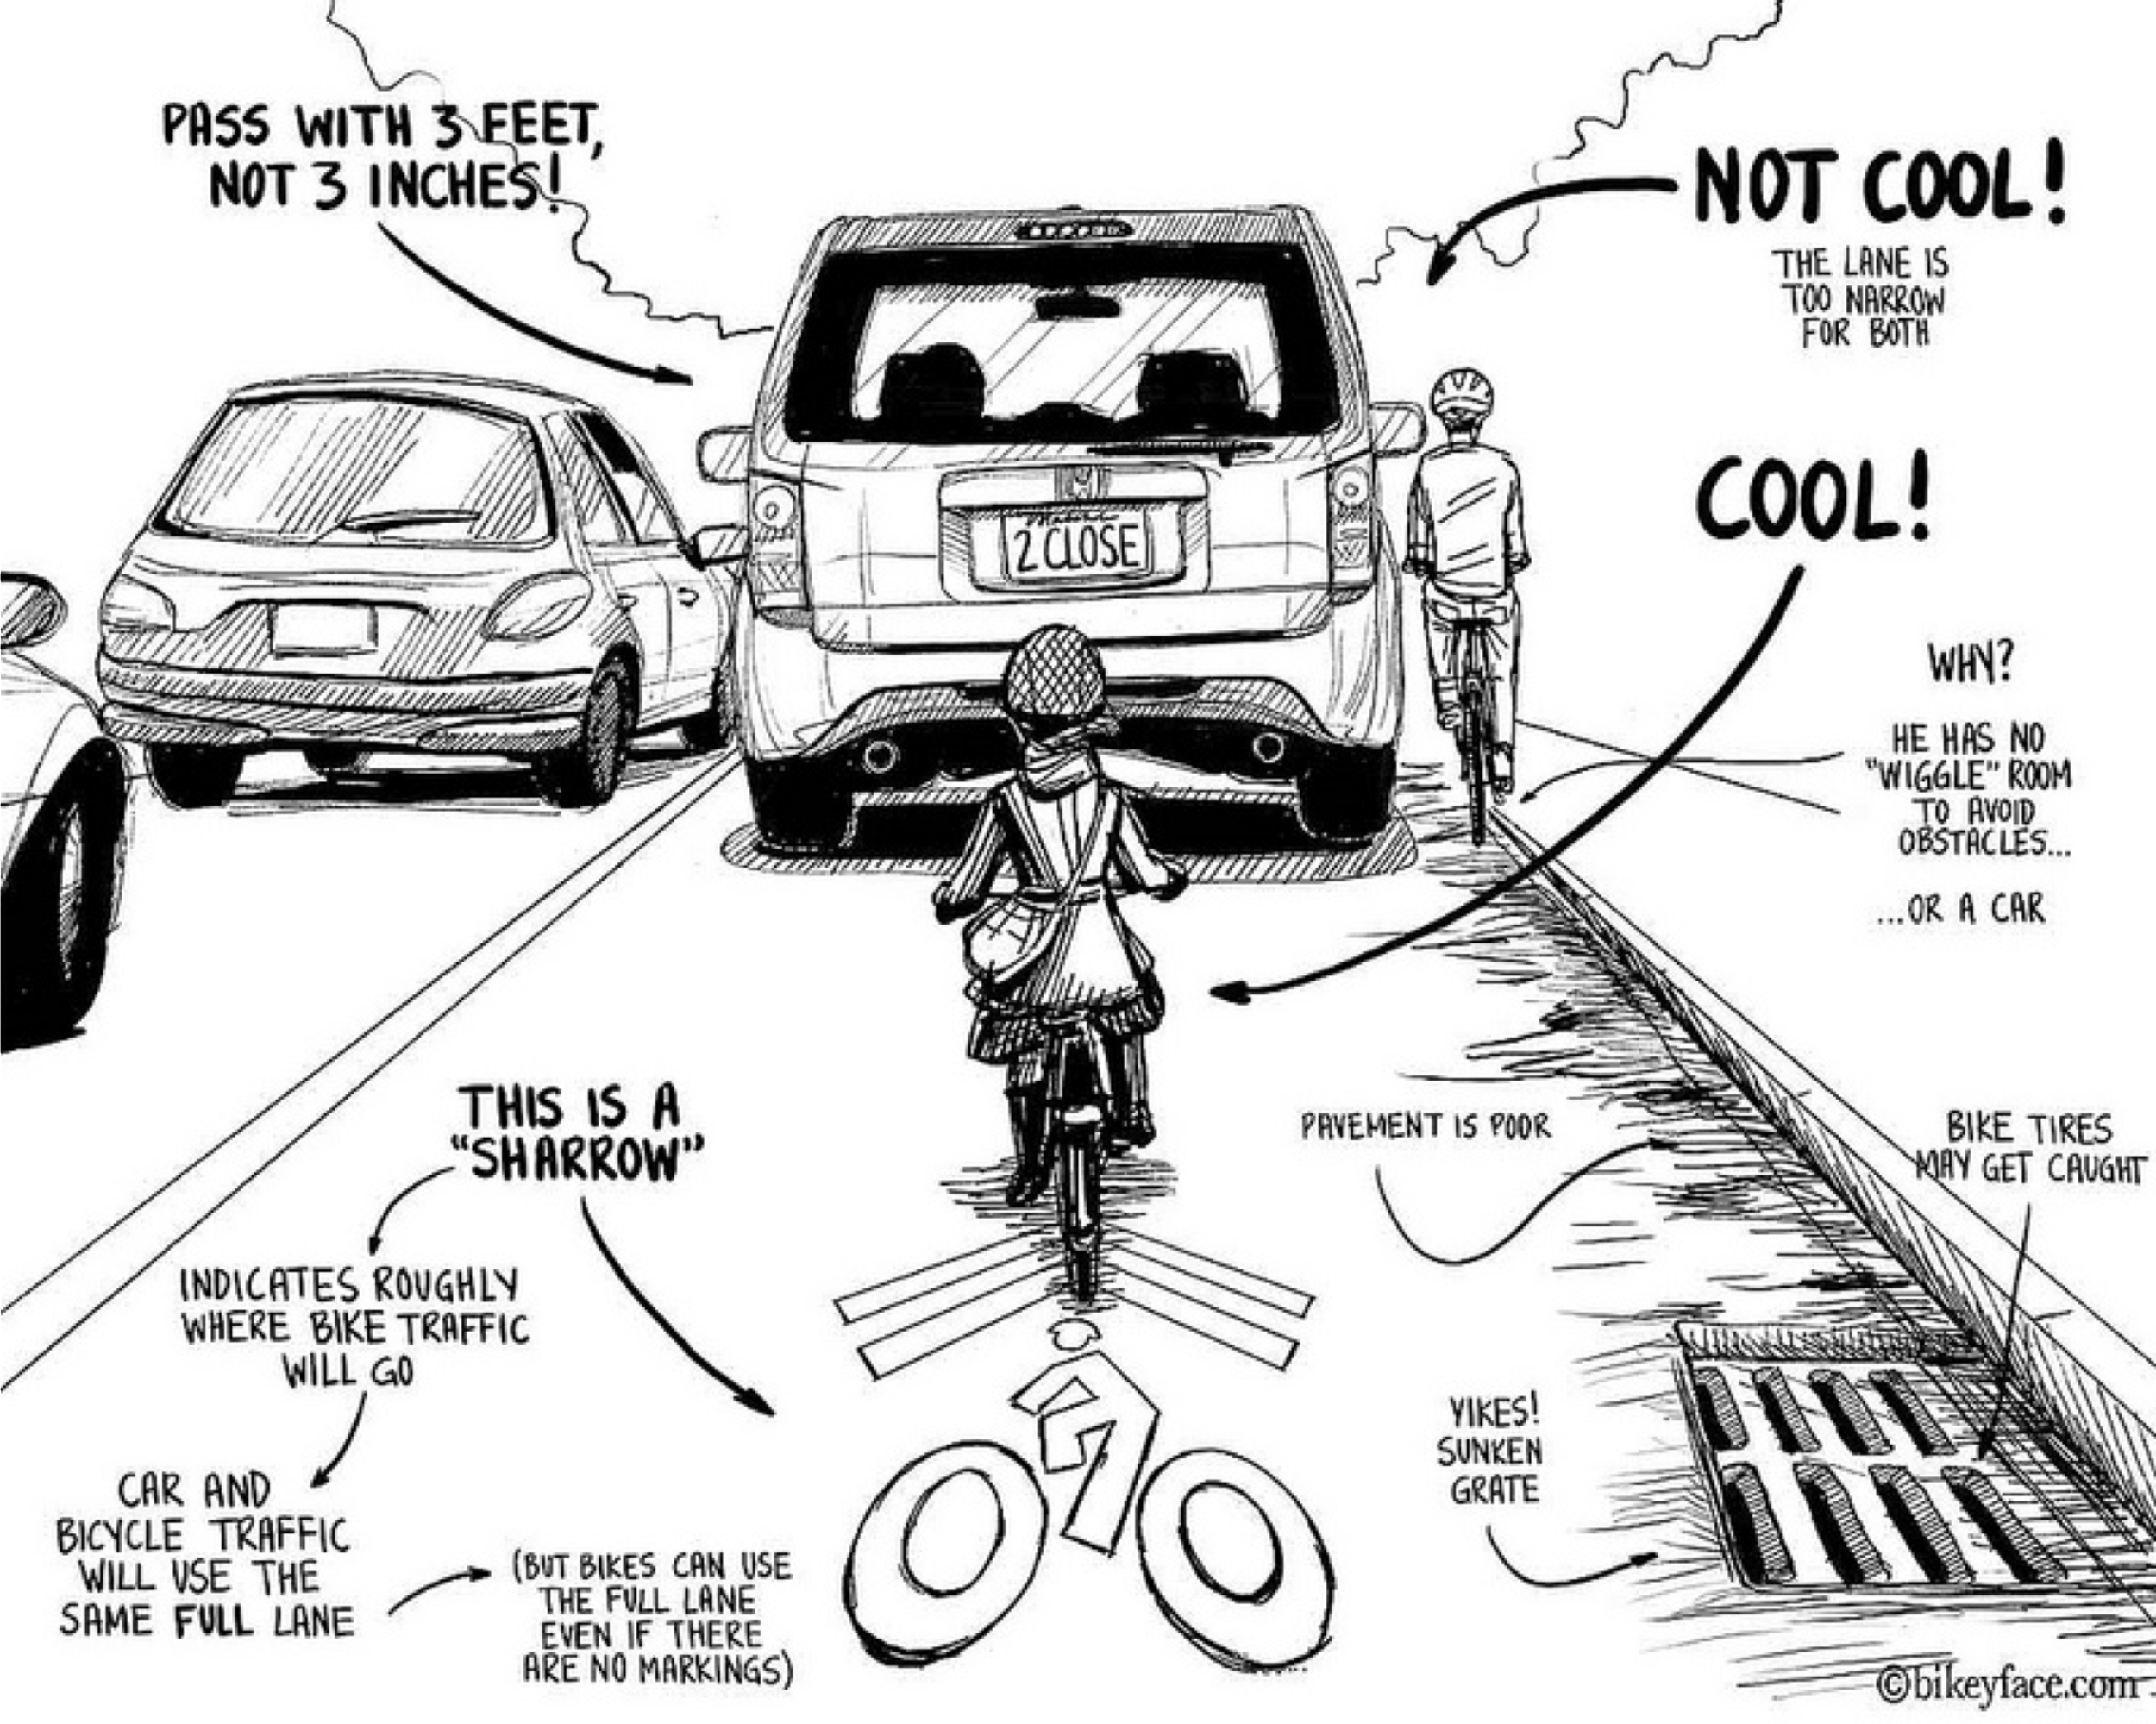 A sampling of current bike lane shortcomings in the US